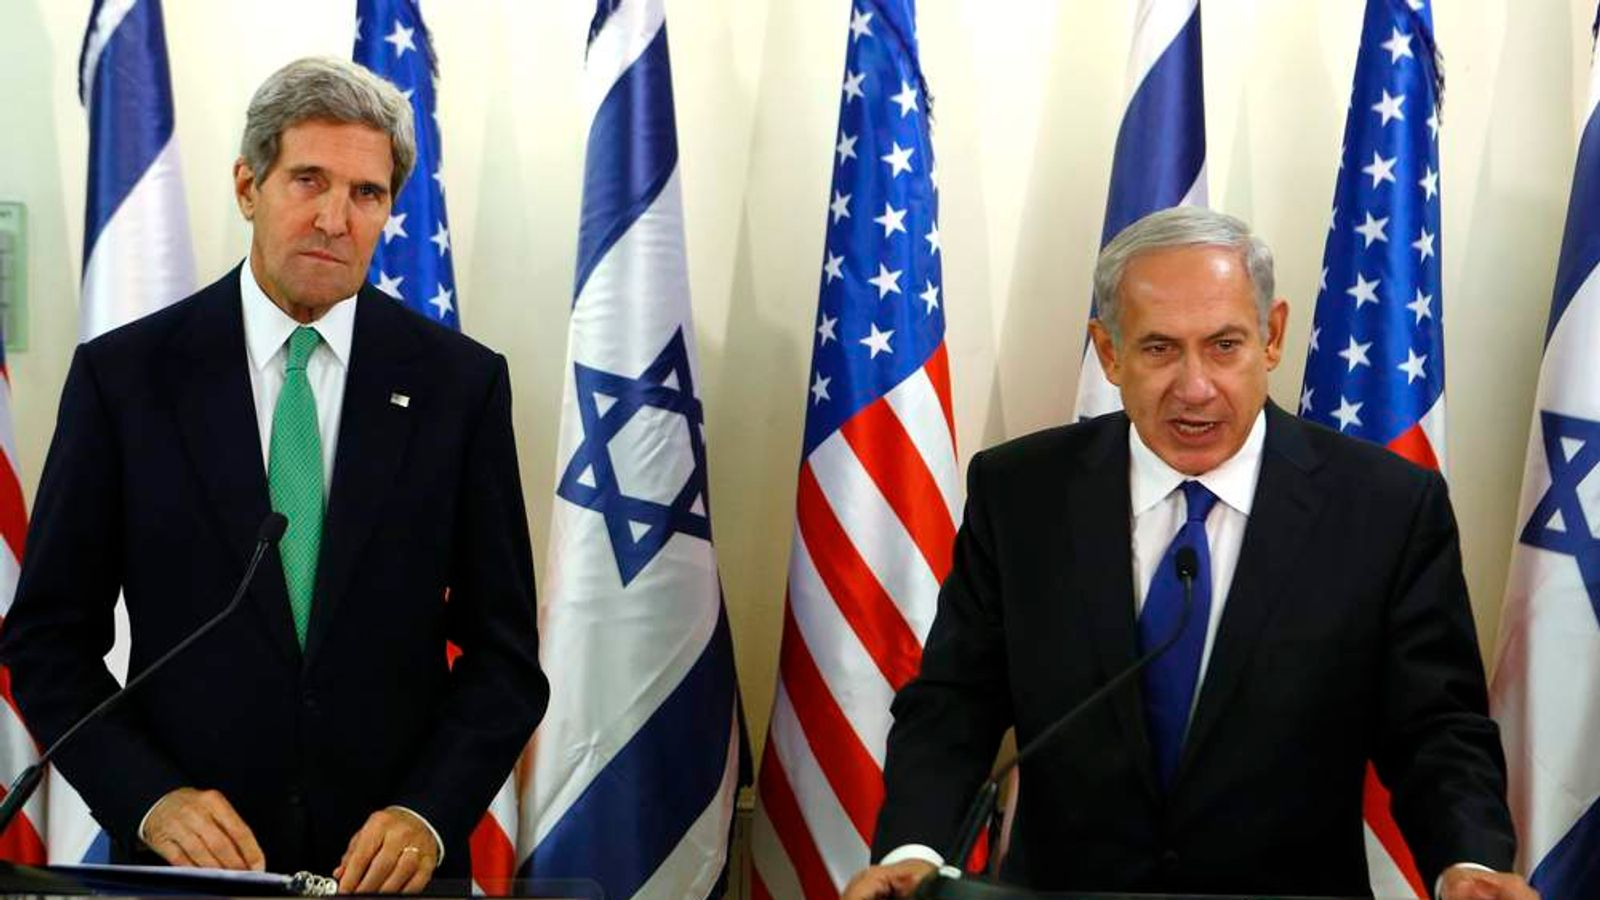 U.S. Secretary of State Kerry listens as Israel's Prime Minister Netanyahu speaks to the media at the prime minister's office in Jerusalem